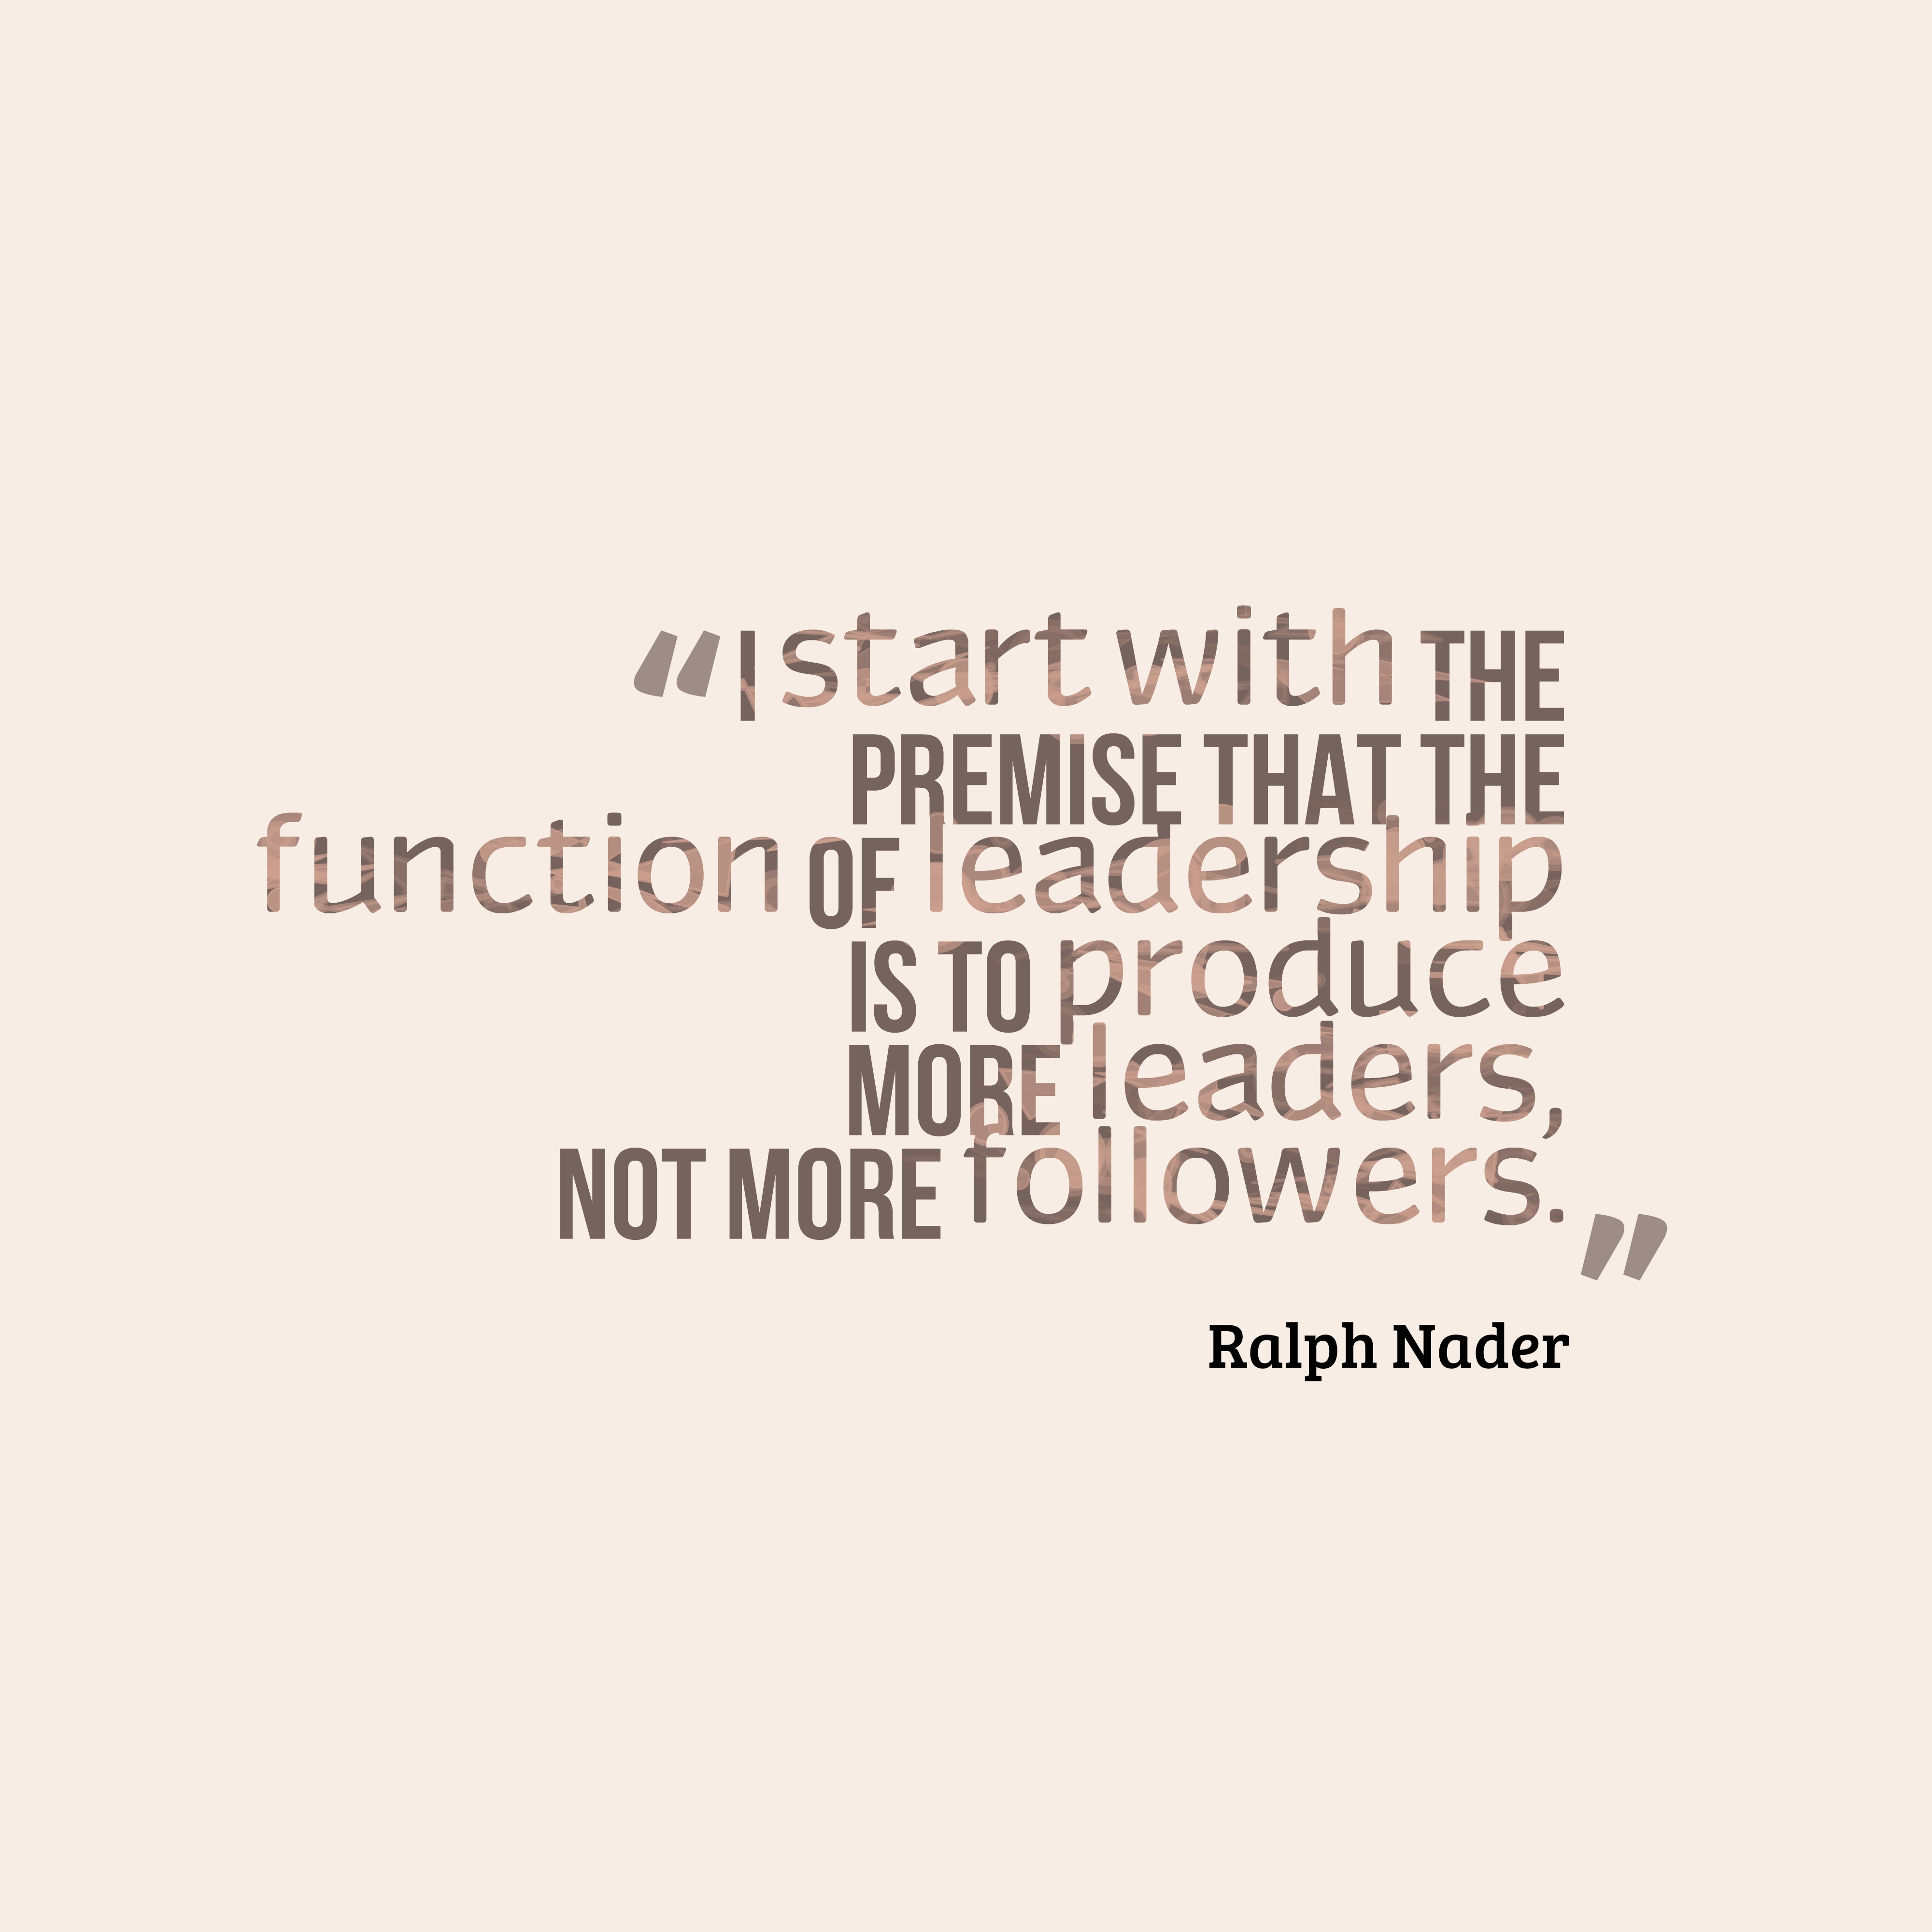 Quotes image of I start with the premise that the function of leadership is to produce more leaders, not more followers.